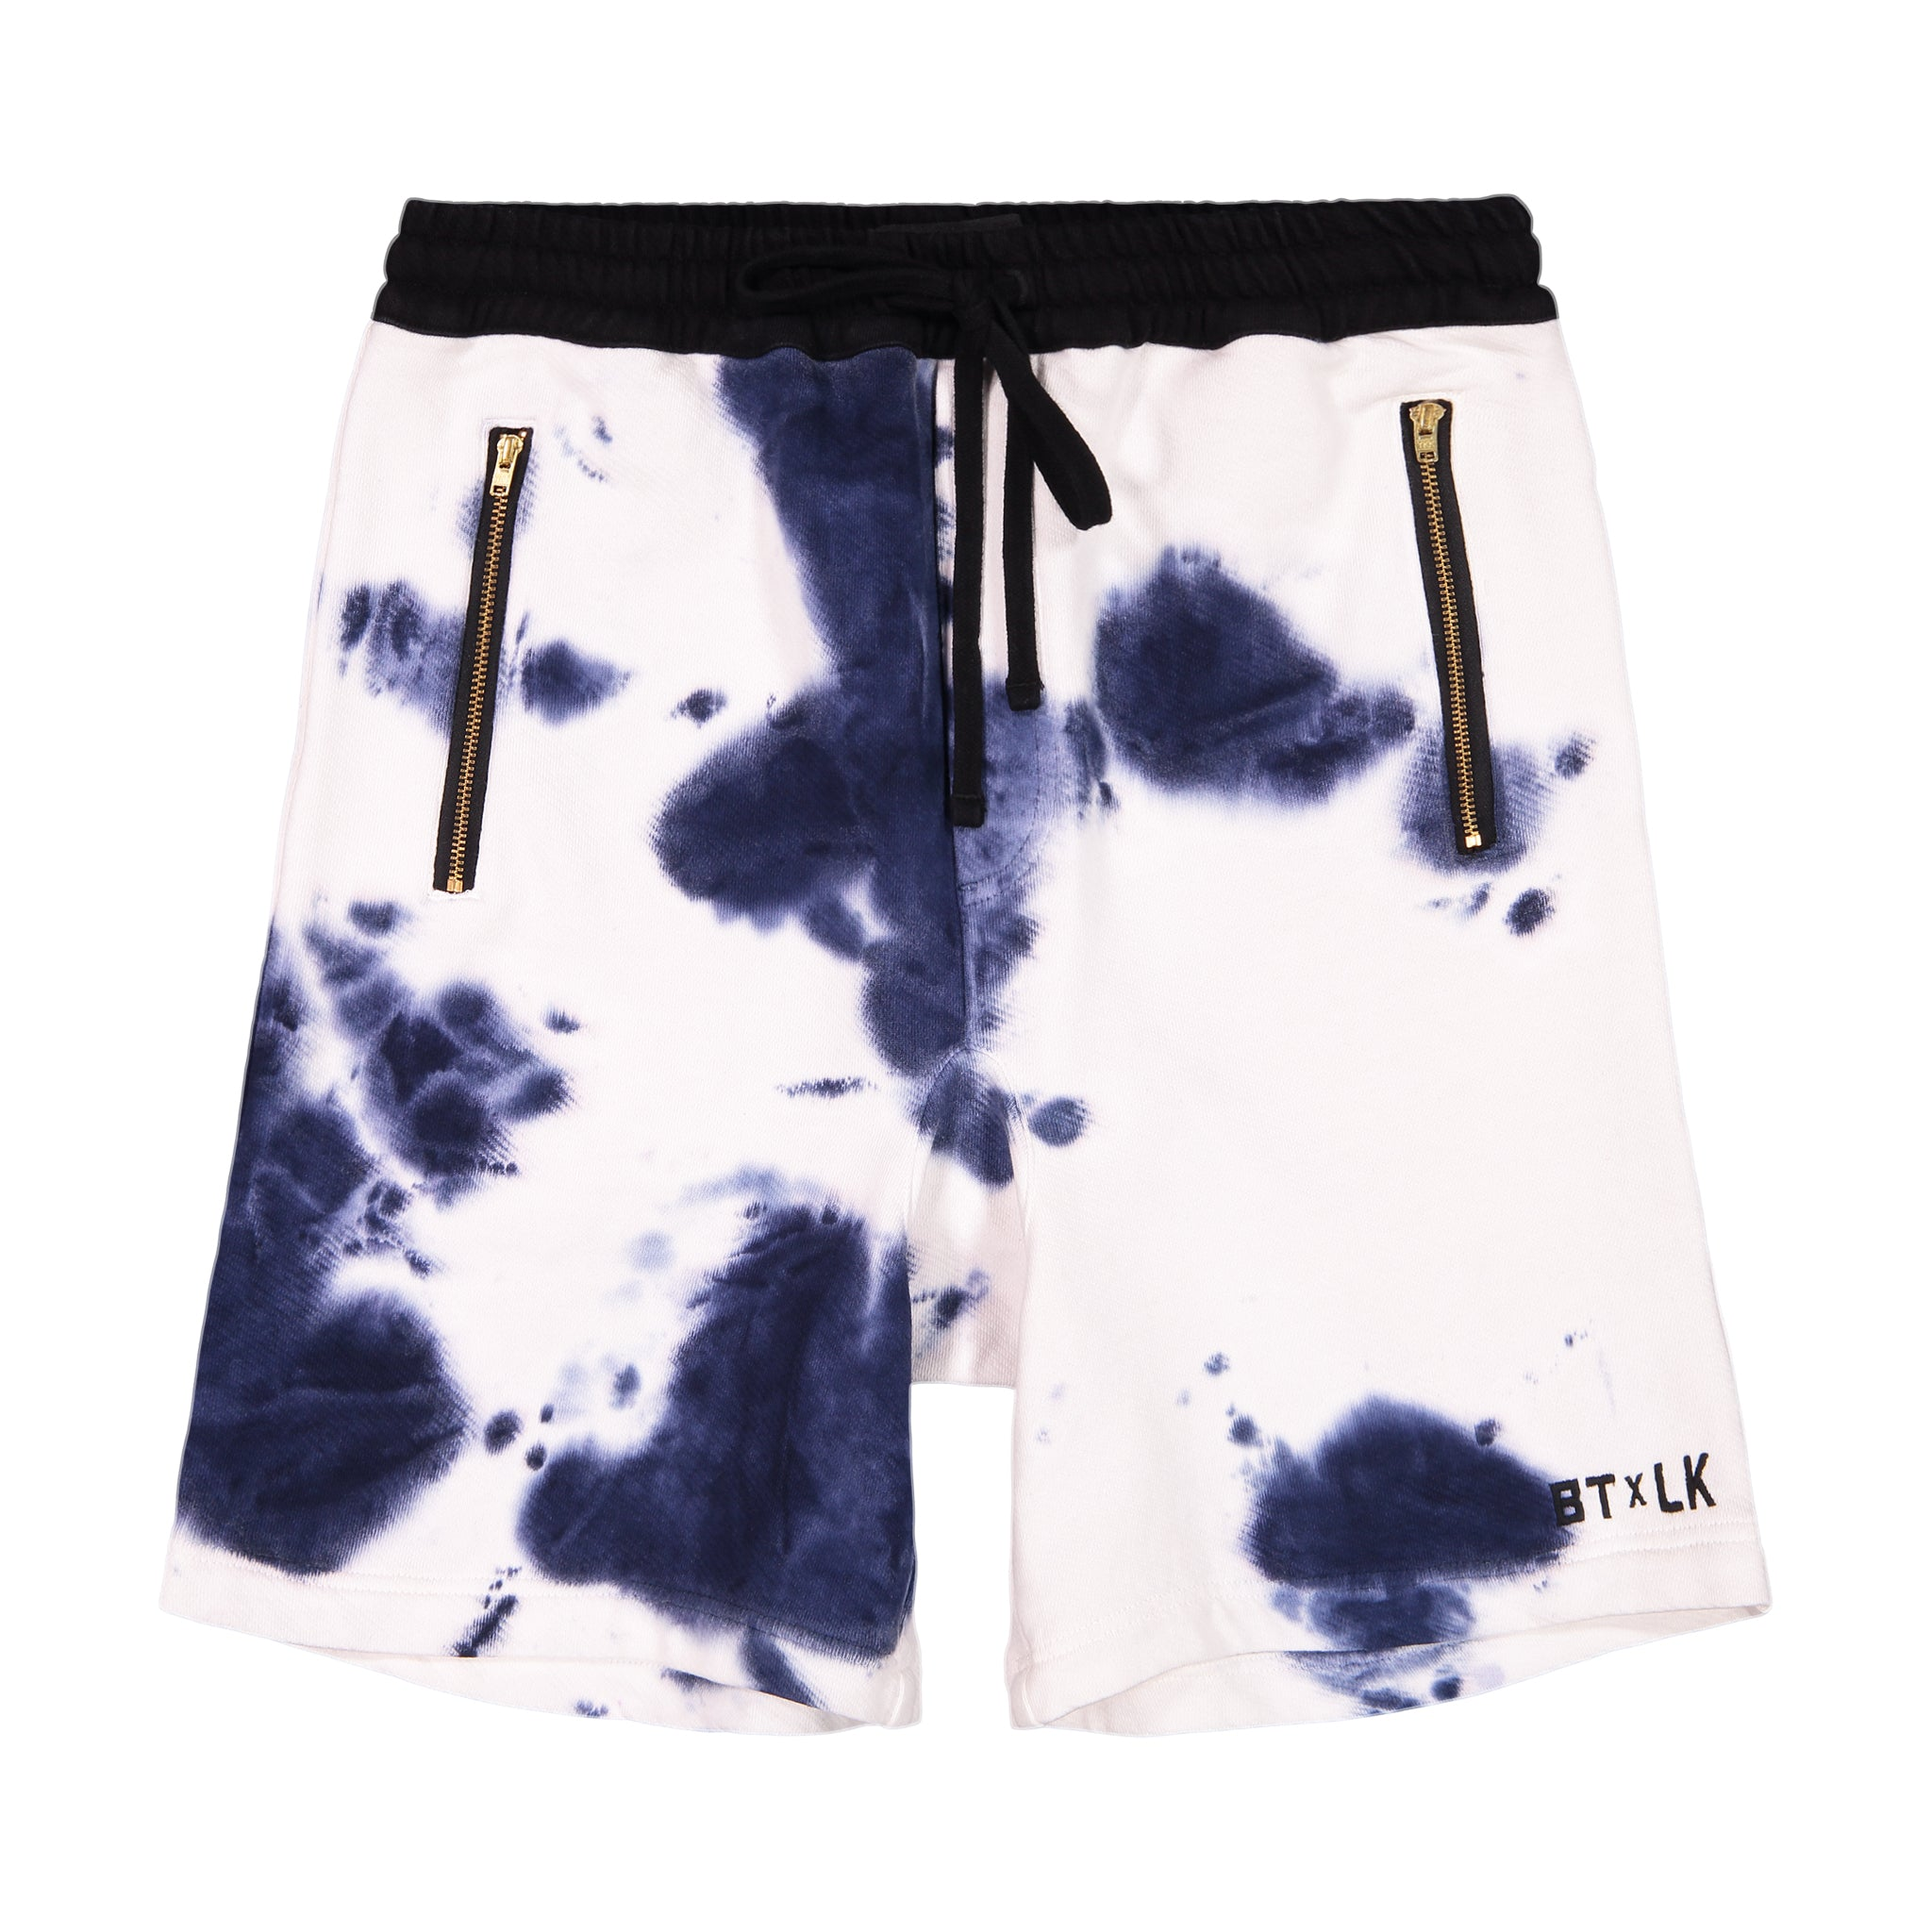 BT x LK Marbled Short